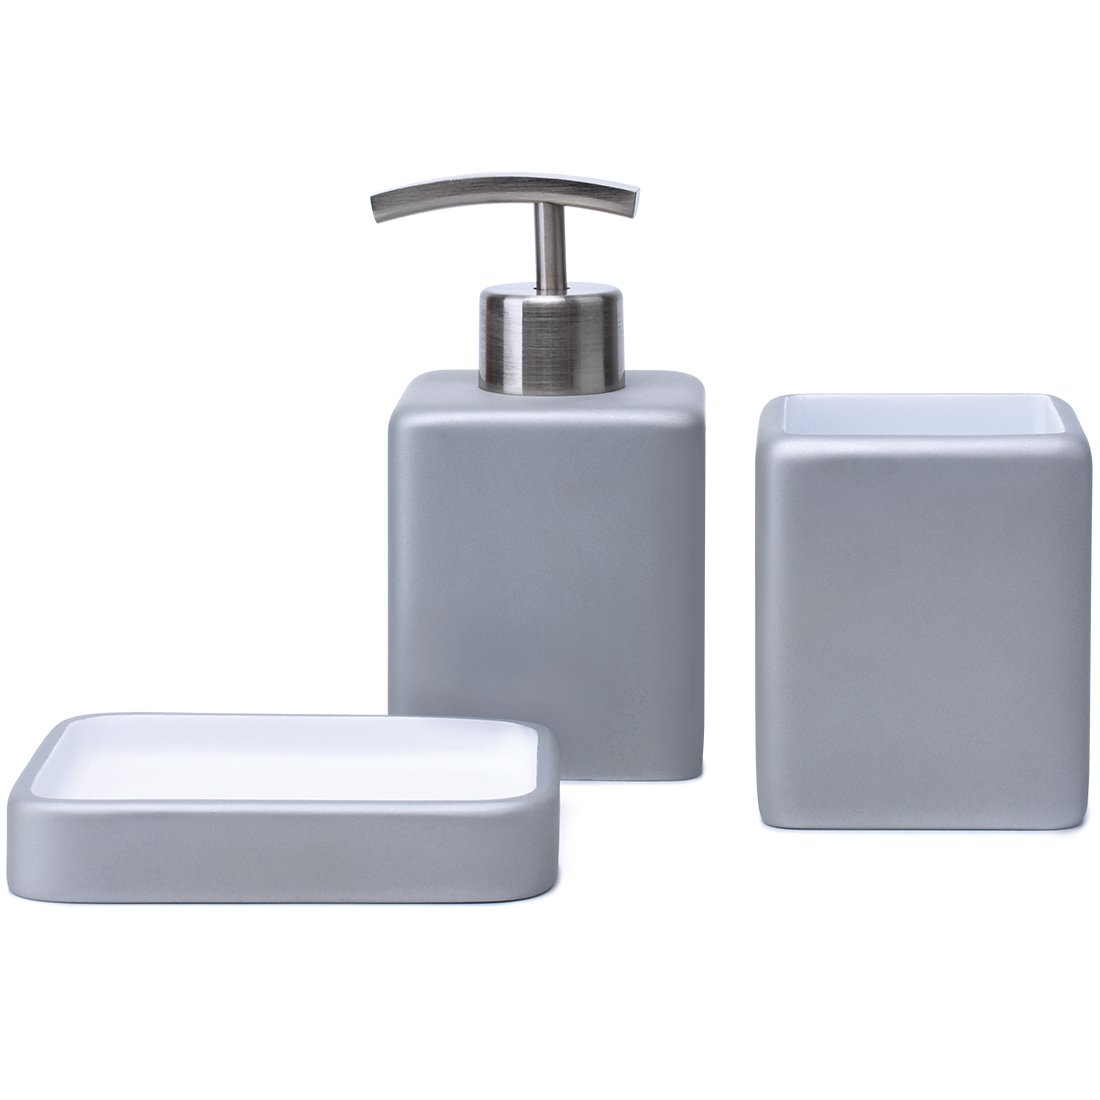 Satu Brown Bathroom Accessories Set Bathroom Soap Dispenser, Tumbler, Soap Dish 3 Pieces Bathroom Sets for Décor and Home Gift (Silver)